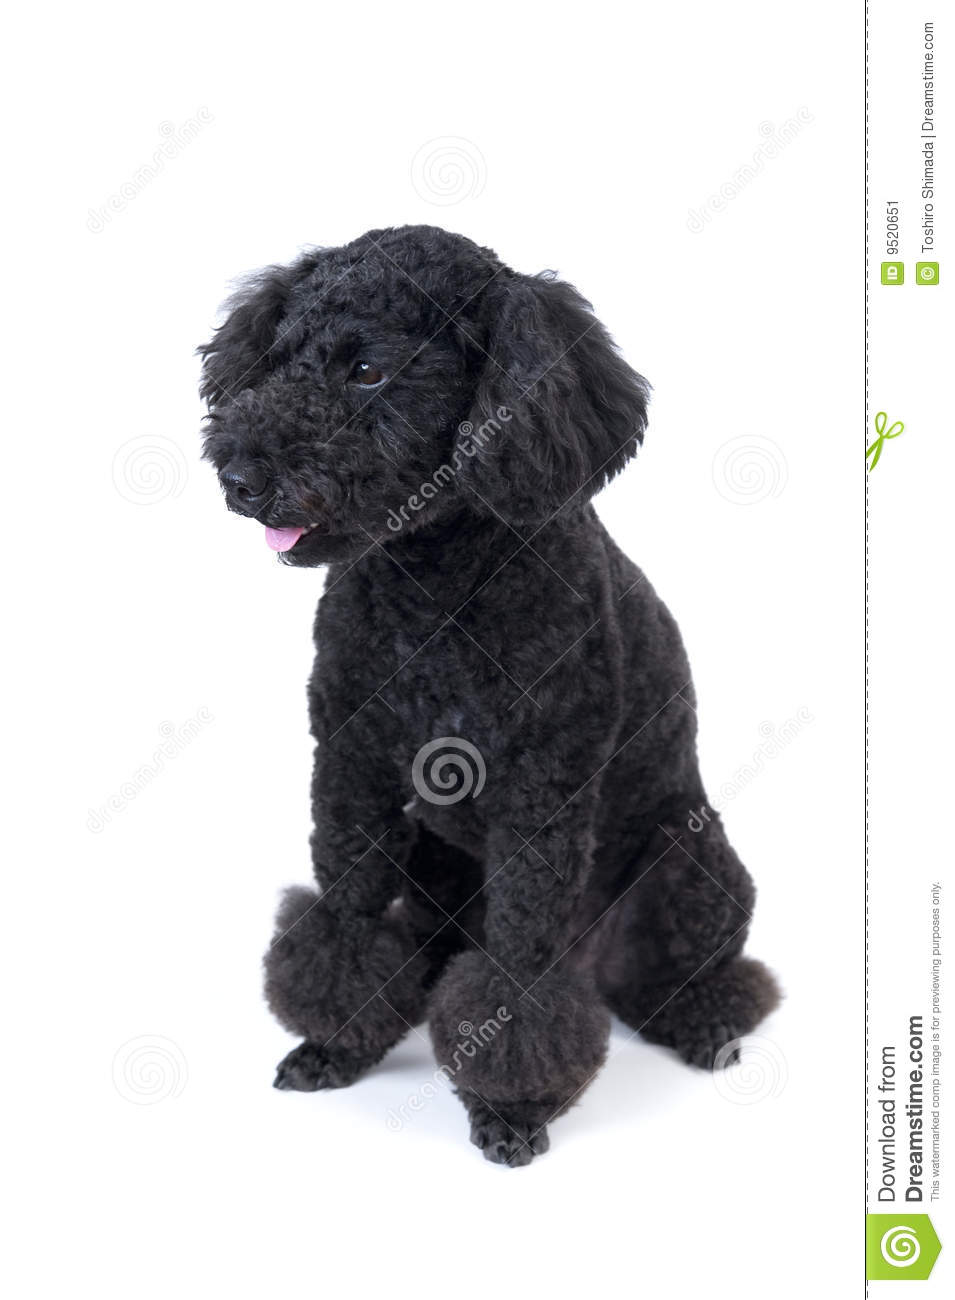 Black Animal Print Wallpaper Black Toy Poodle Stock Image Image Of Cute Black